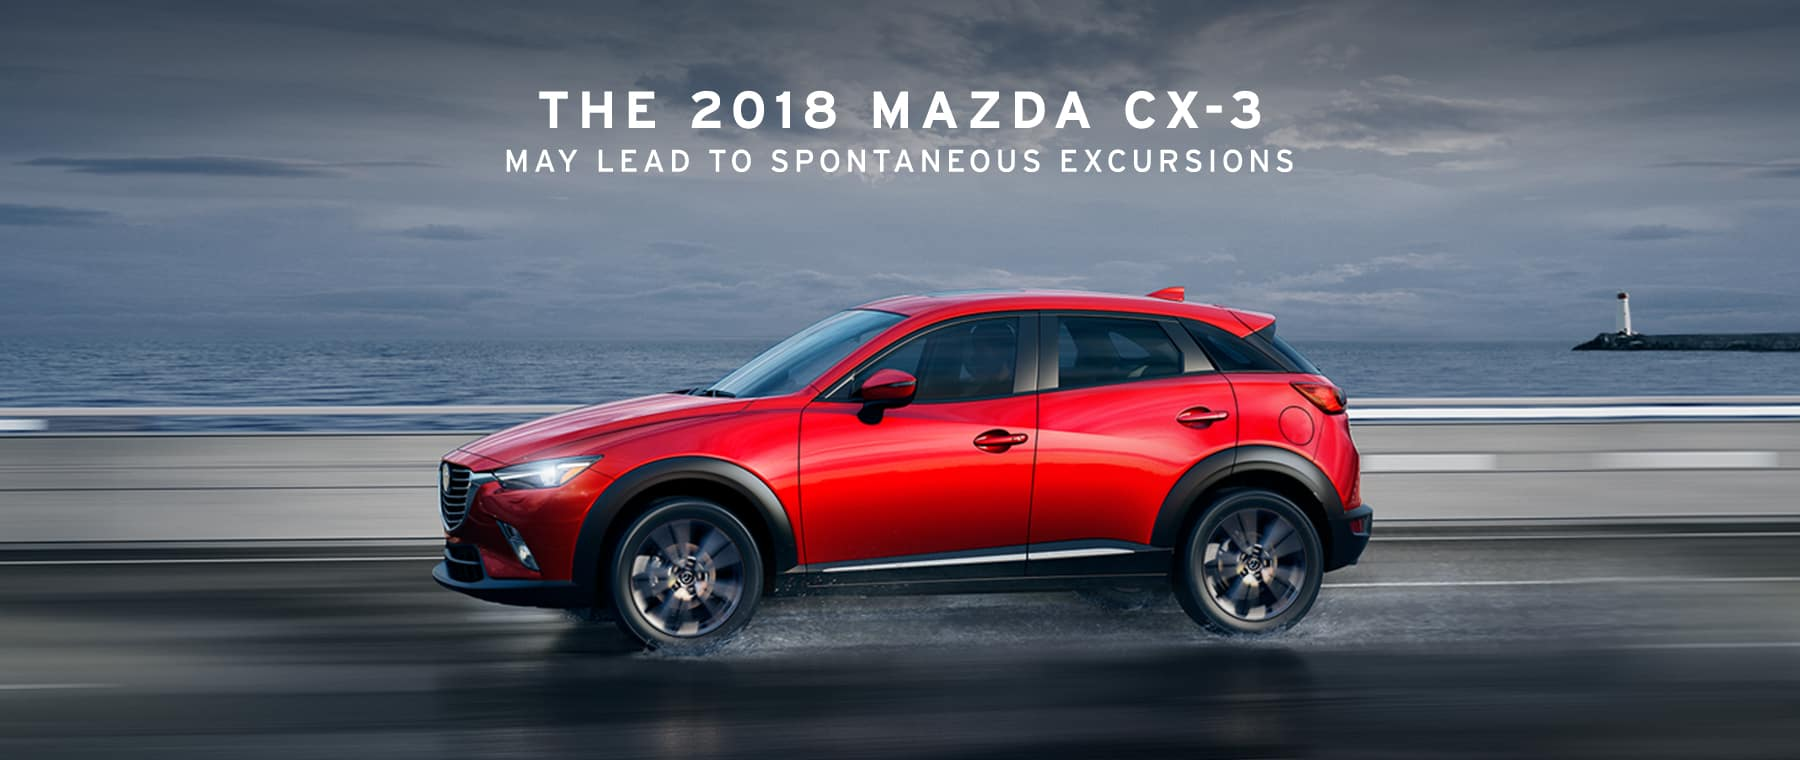 Lancaster Mazda | Mazda Dealer in East Petersburg, PA